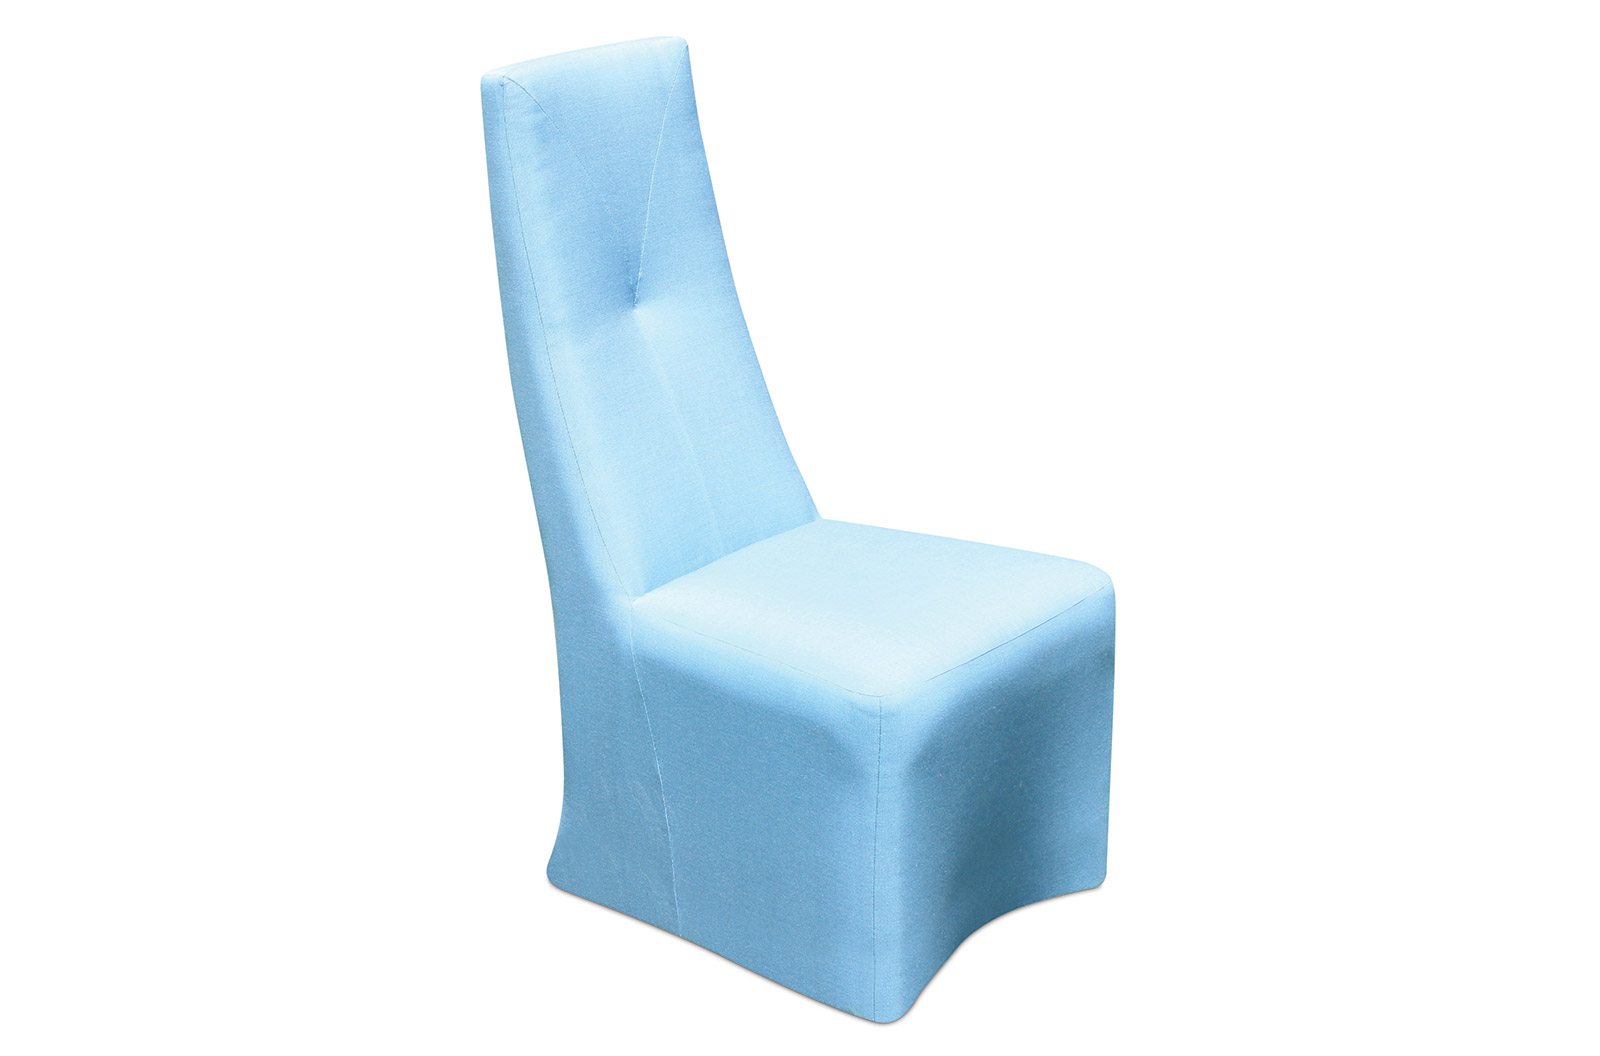 furniture_fizz_firtini_chair_blue_101FT001P2